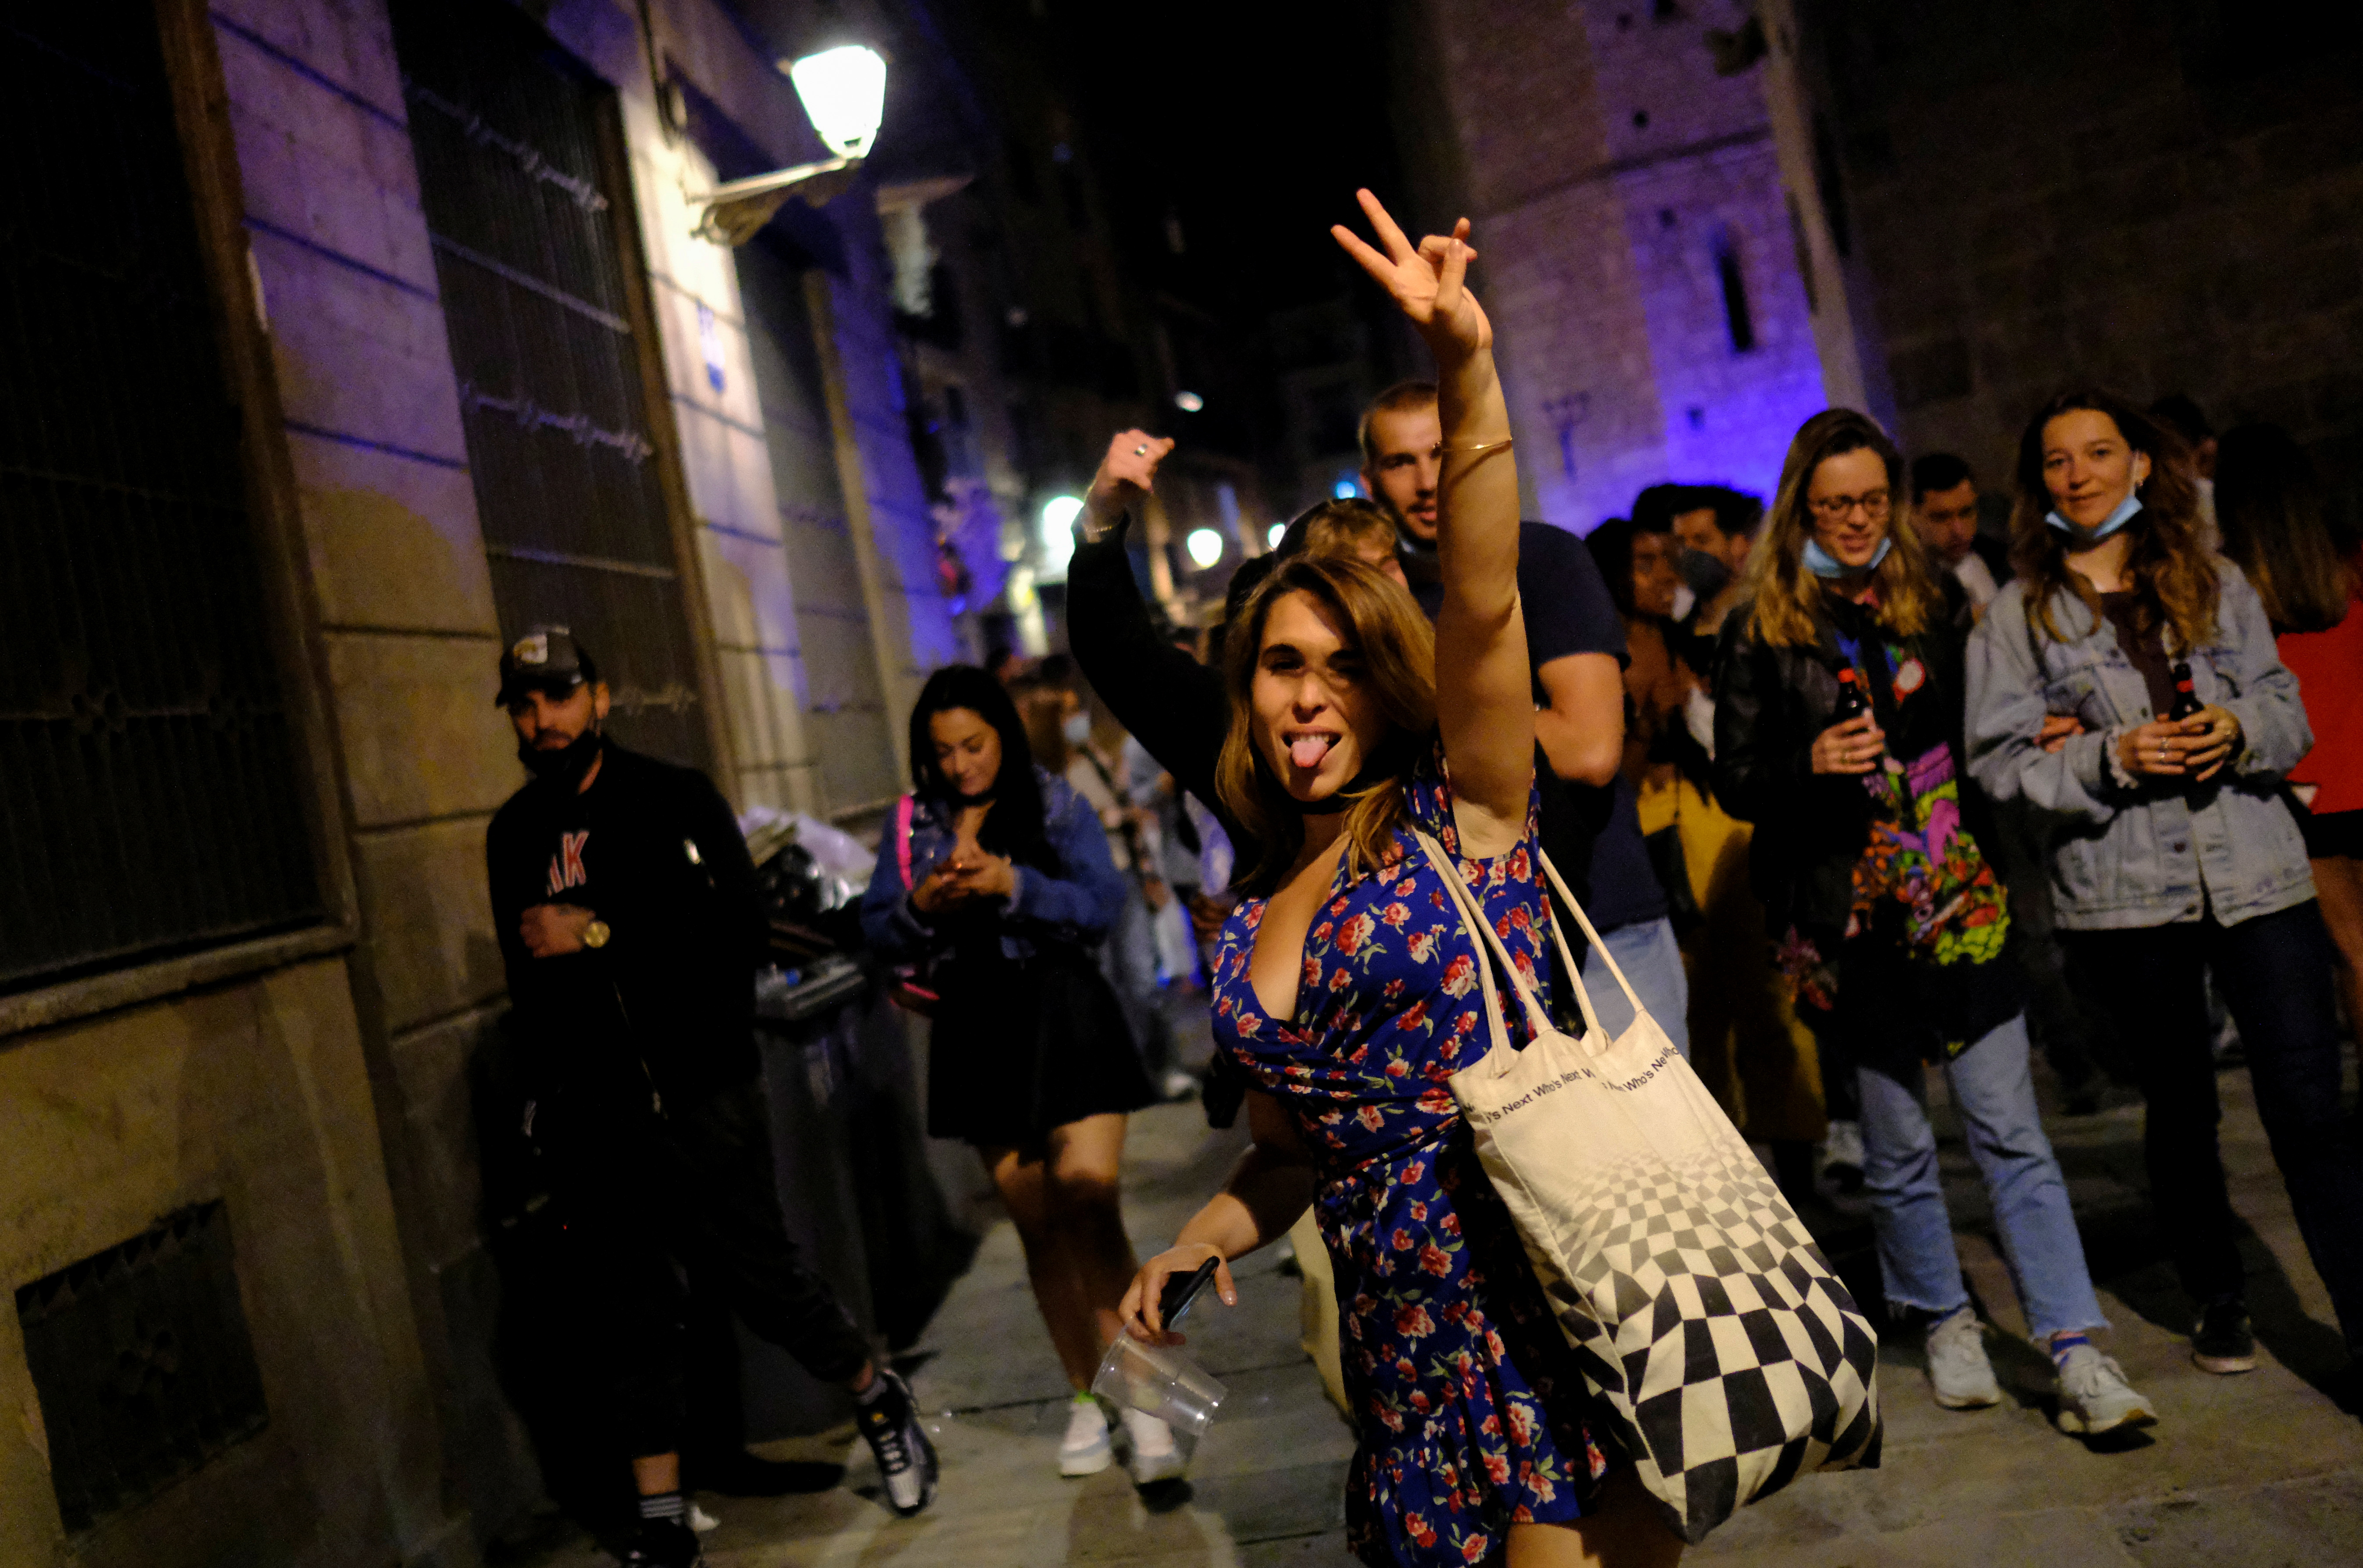 People celebrate on a street in the neighborhood of Born, as the state of emergency decreed by the Spanish Government to prevent the spread of the coronavirus disease (COVID-19) gets lifted in Barcelona, Spain, May 9, 2021. REUTERS/Nacho Doce